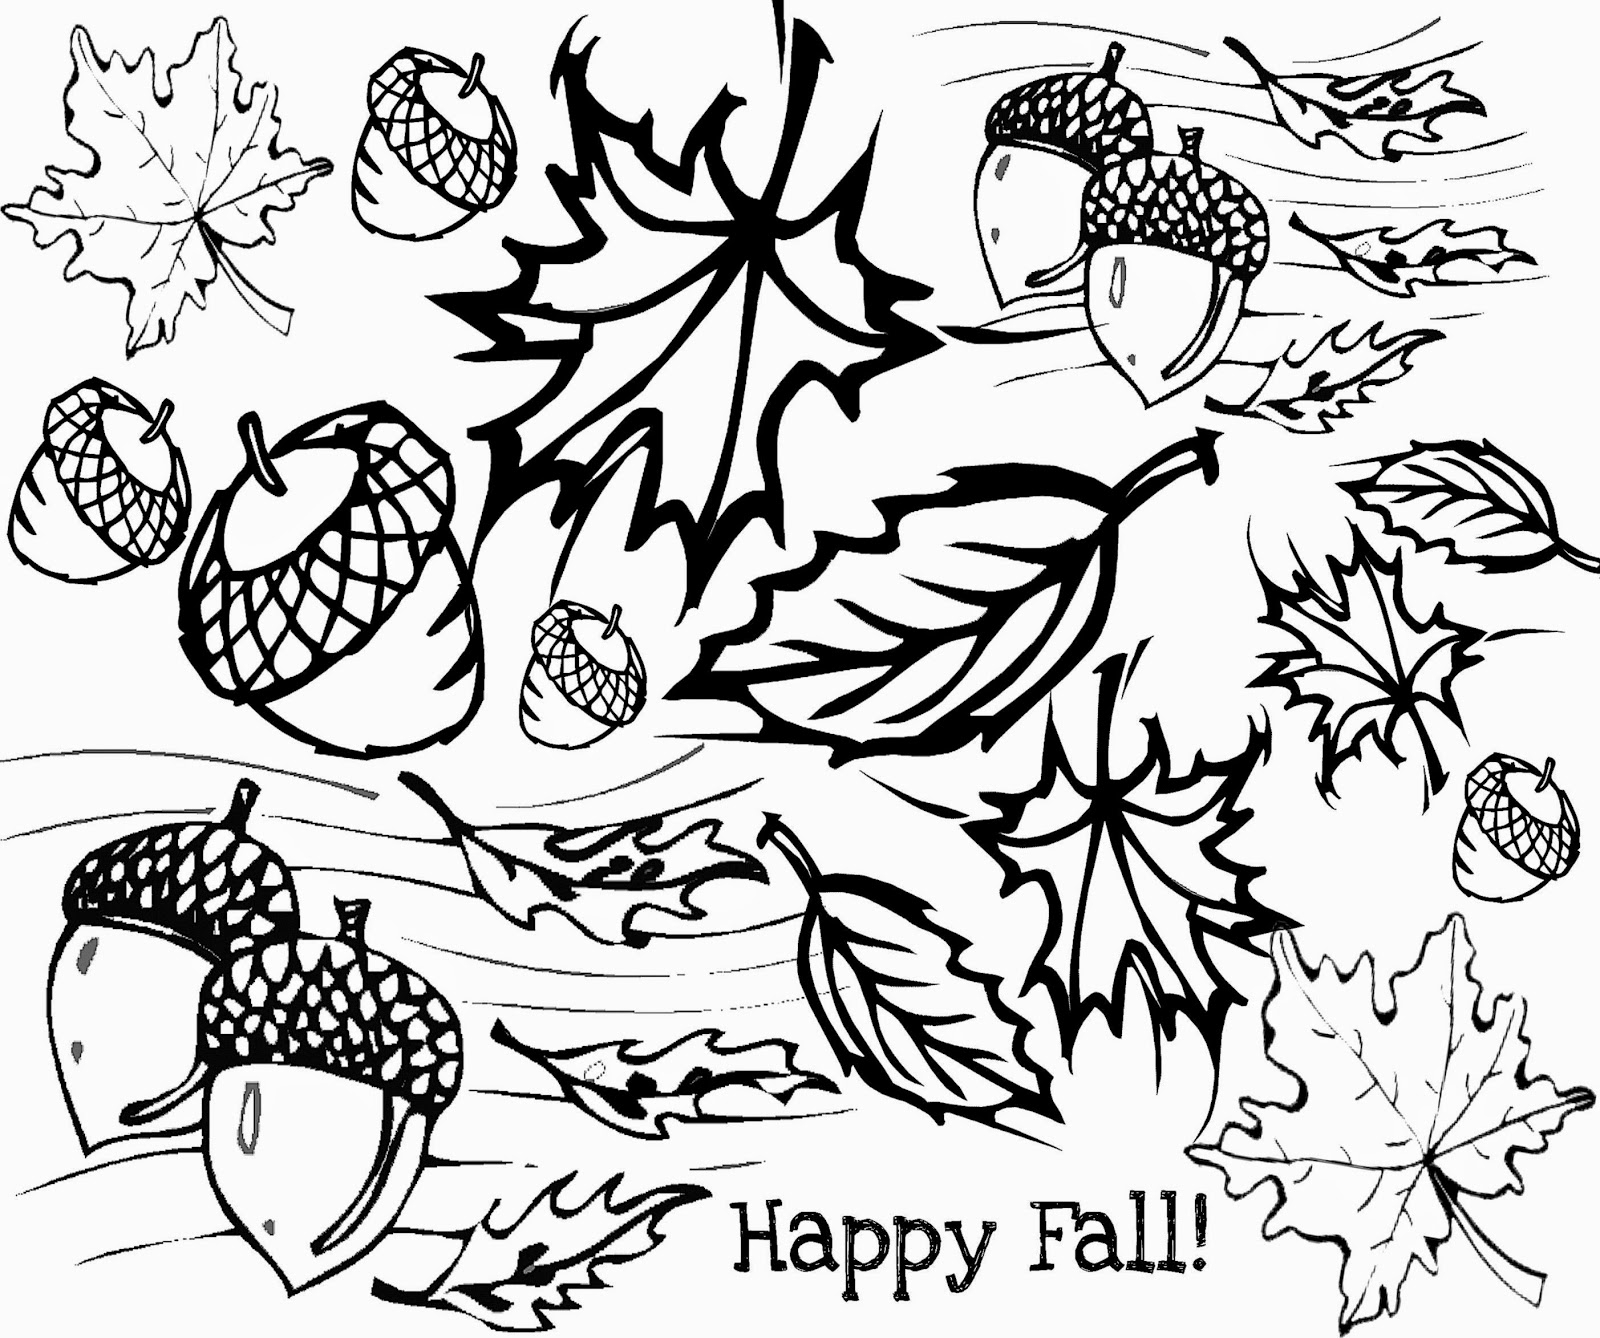 Fall Trees Coloring Pages Adult - Worksheet & Coloring Pages